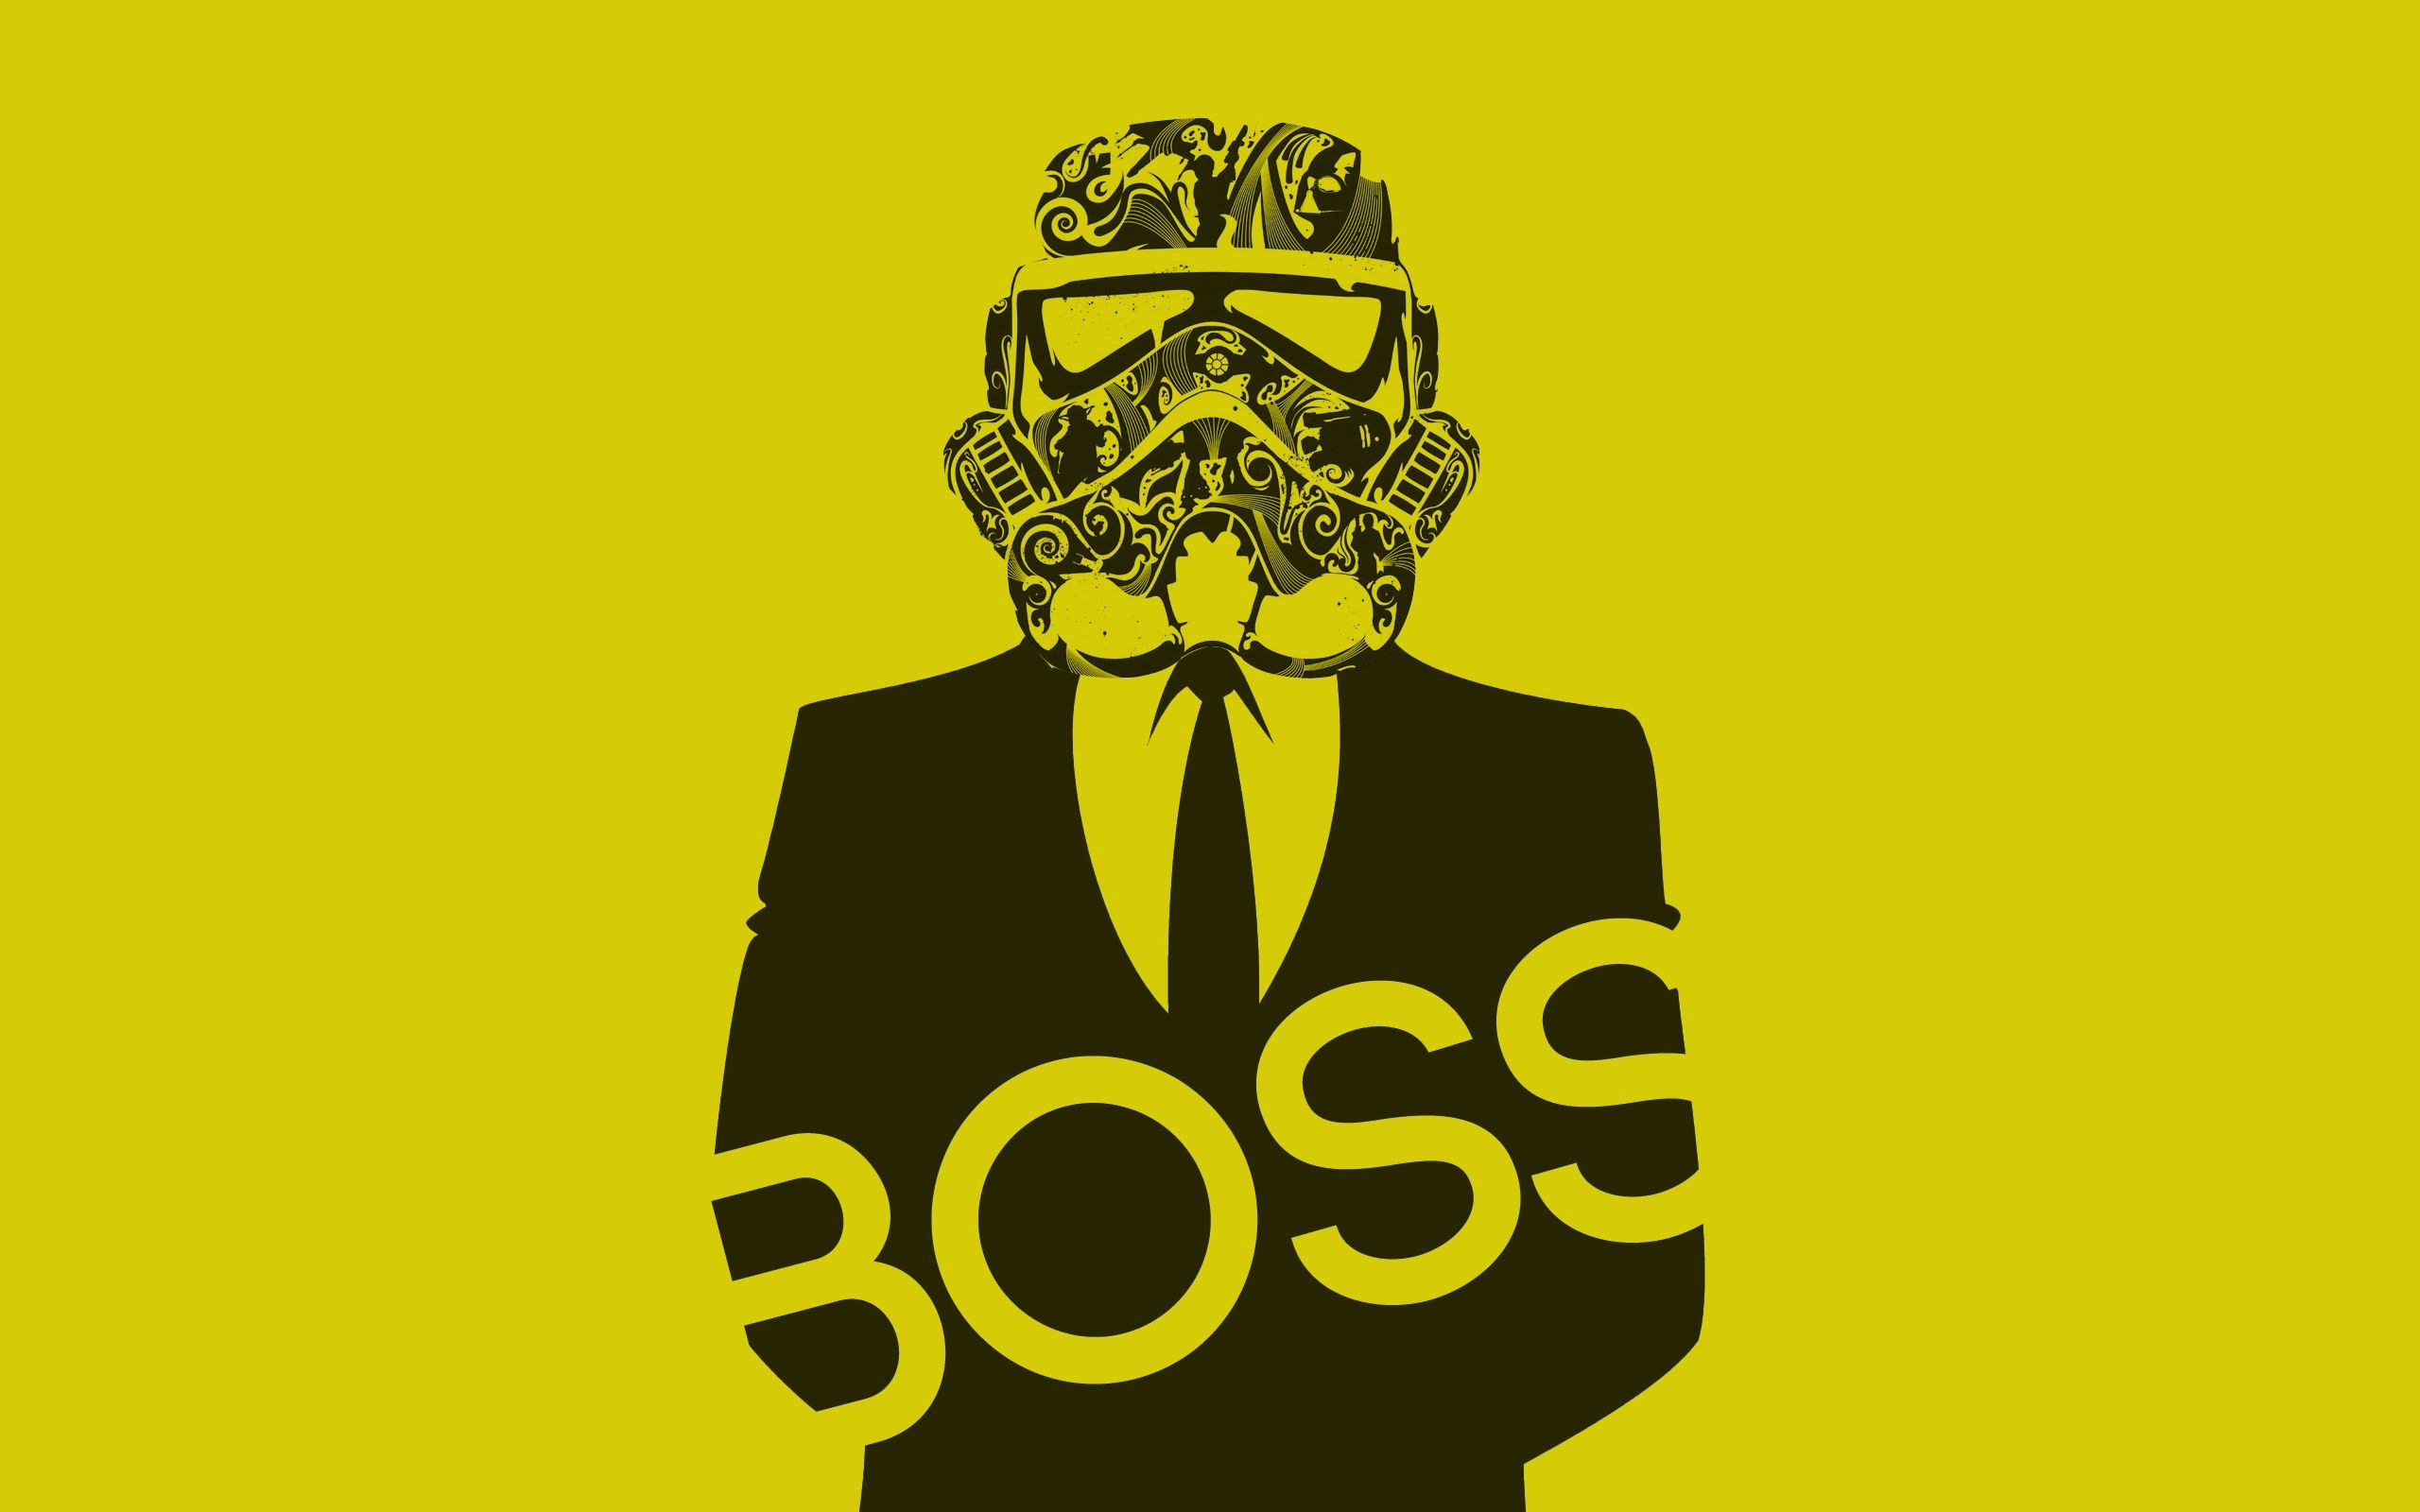 Boss Wallpapers   Top Boss Backgrounds   WallpaperAccess 2560x1600